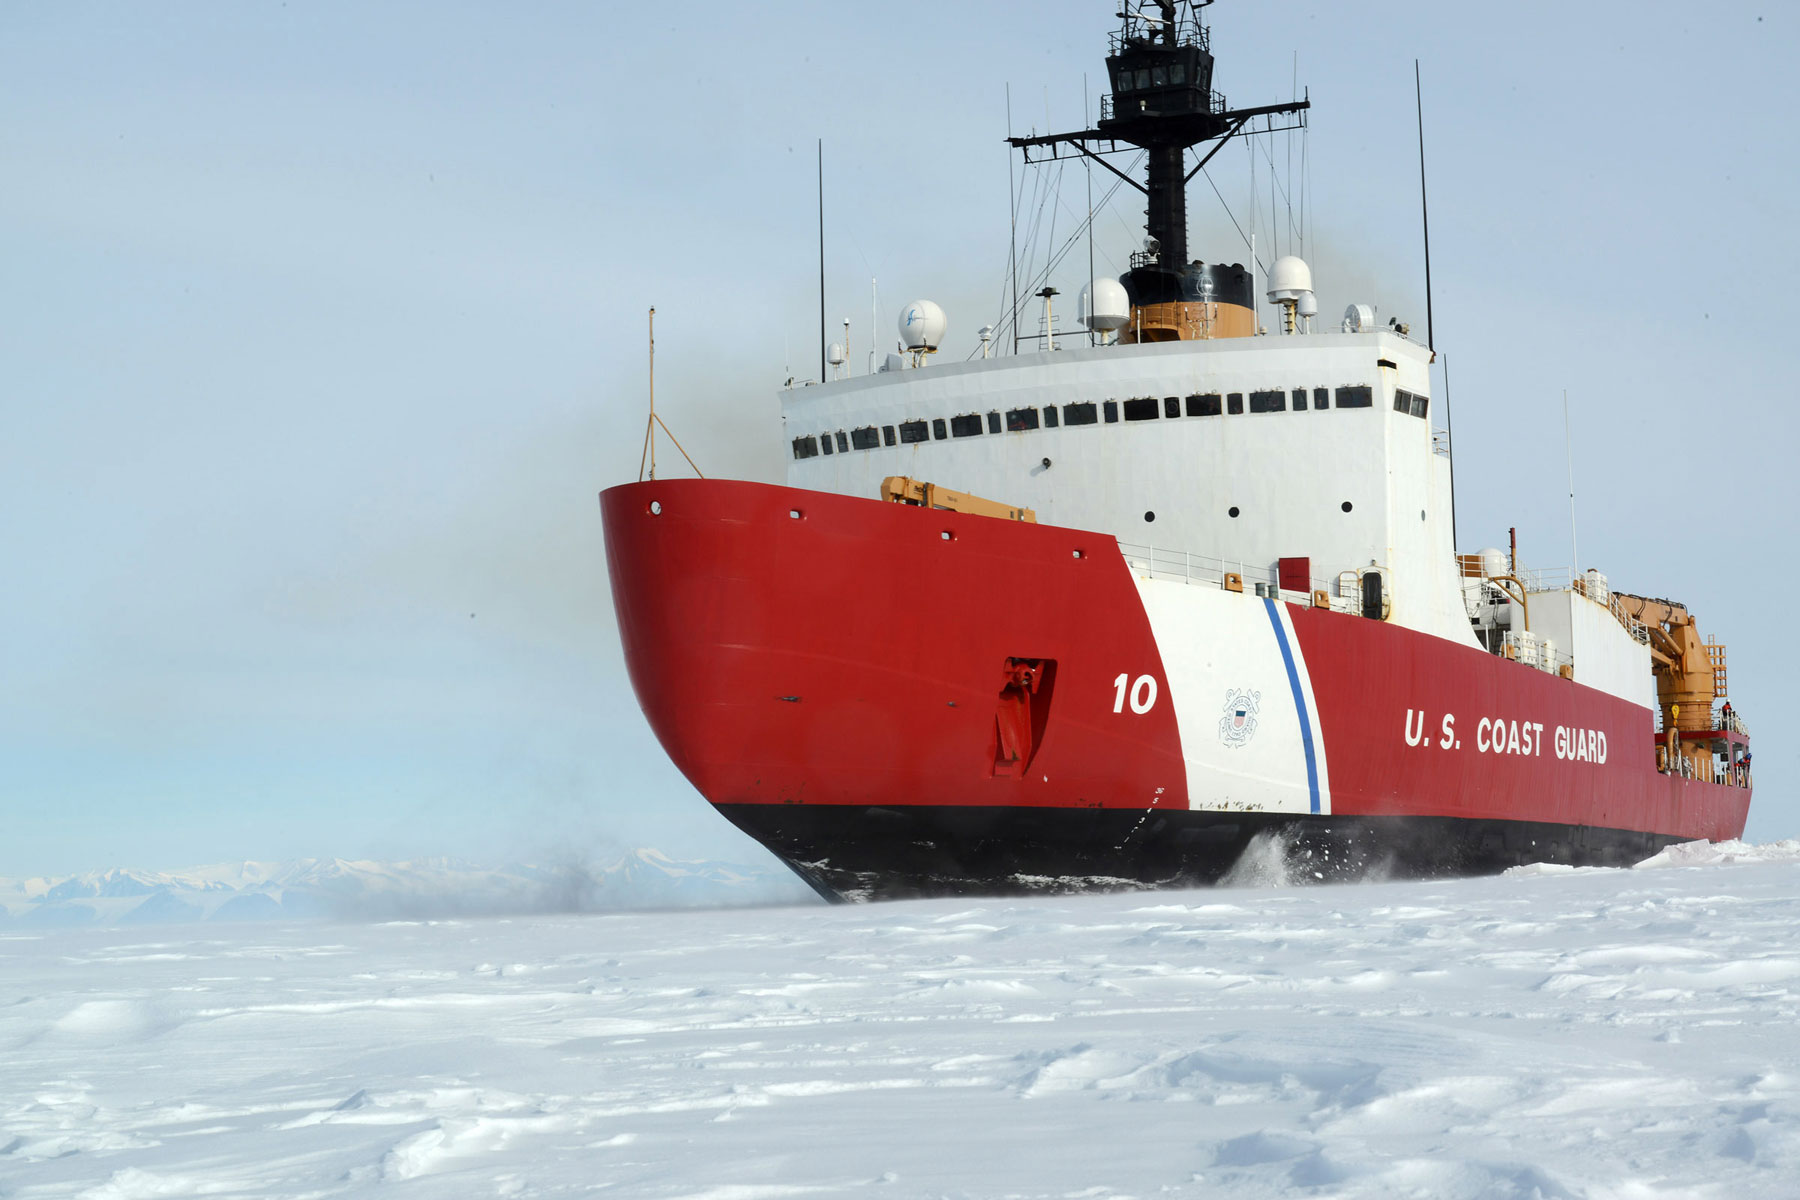 As World Changes, Coast Guard Gets More Time in the Spotlight